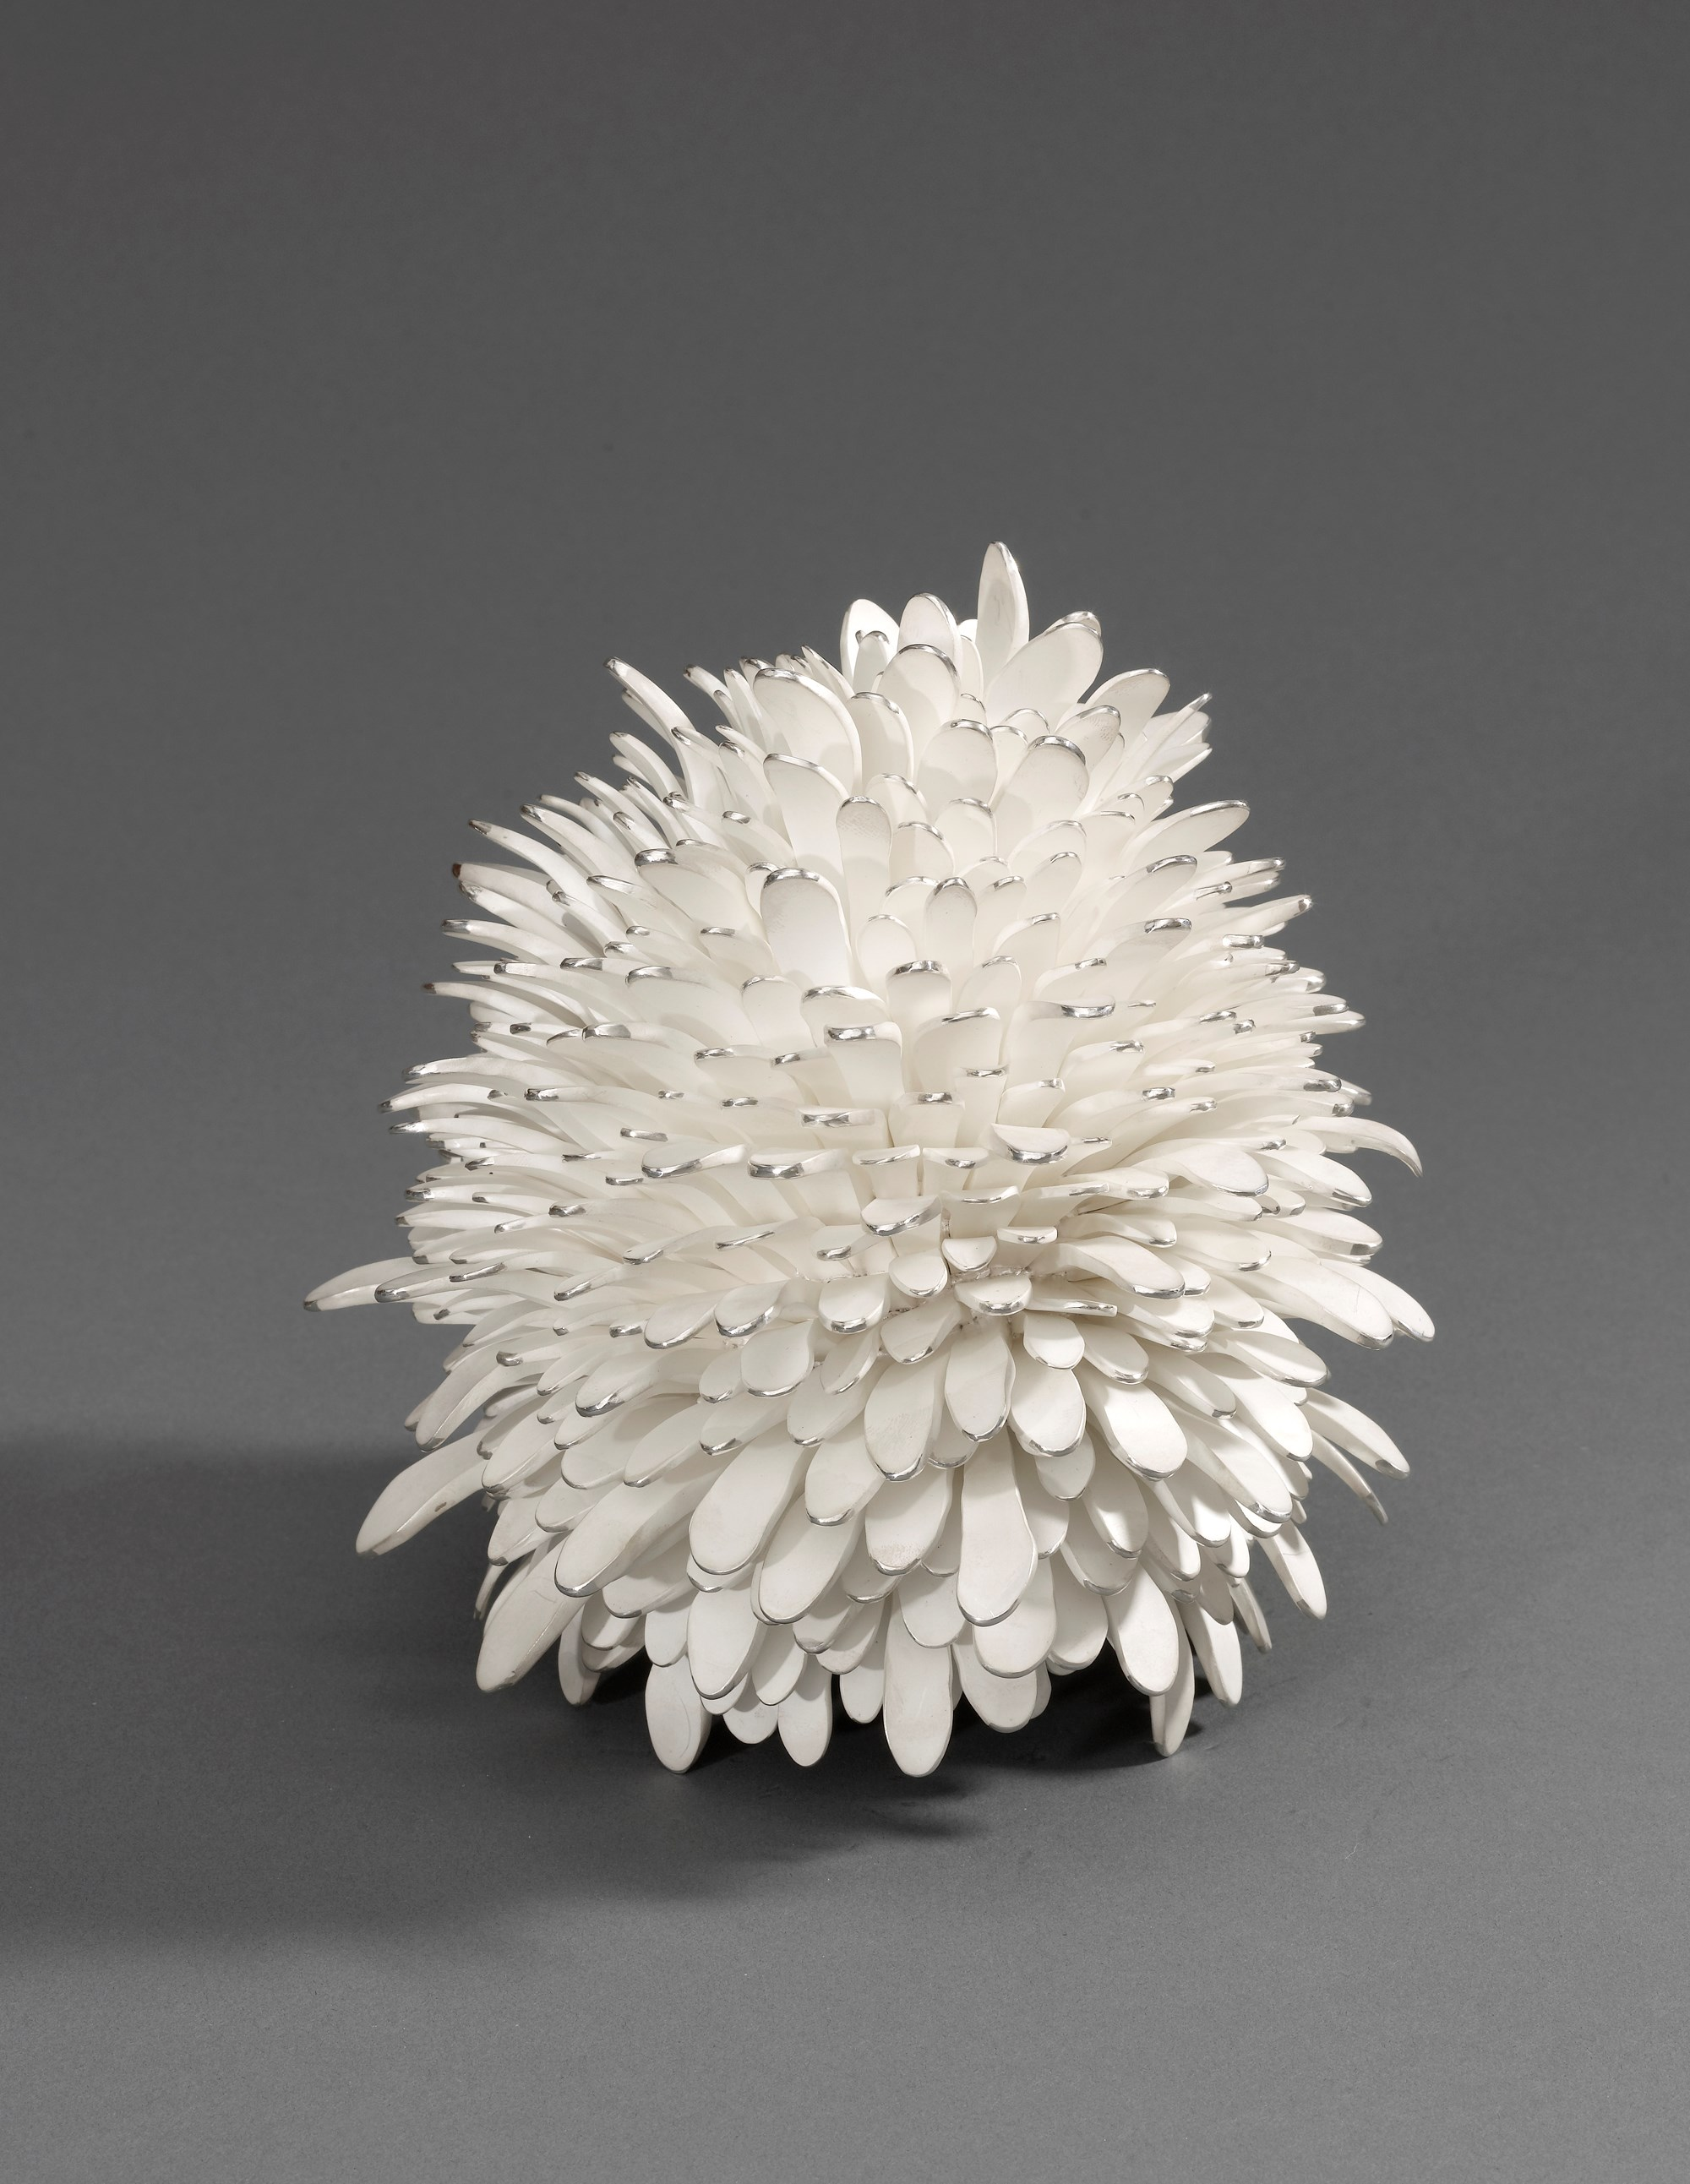 'Pine Cone', 2007, Junko Mori. Measurements: Height 16cm Width 17cm. Image © The Goldsmiths' Company. Courtesy 'Collection: The Worshipful Company of Goldsmiths'. '